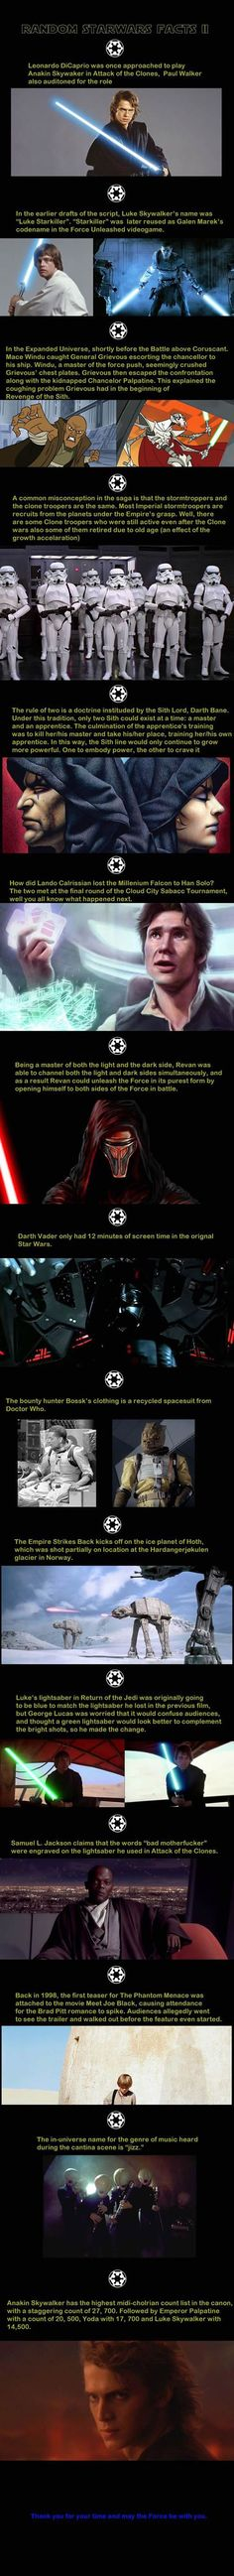 Some Star Wars facts to start your day off: